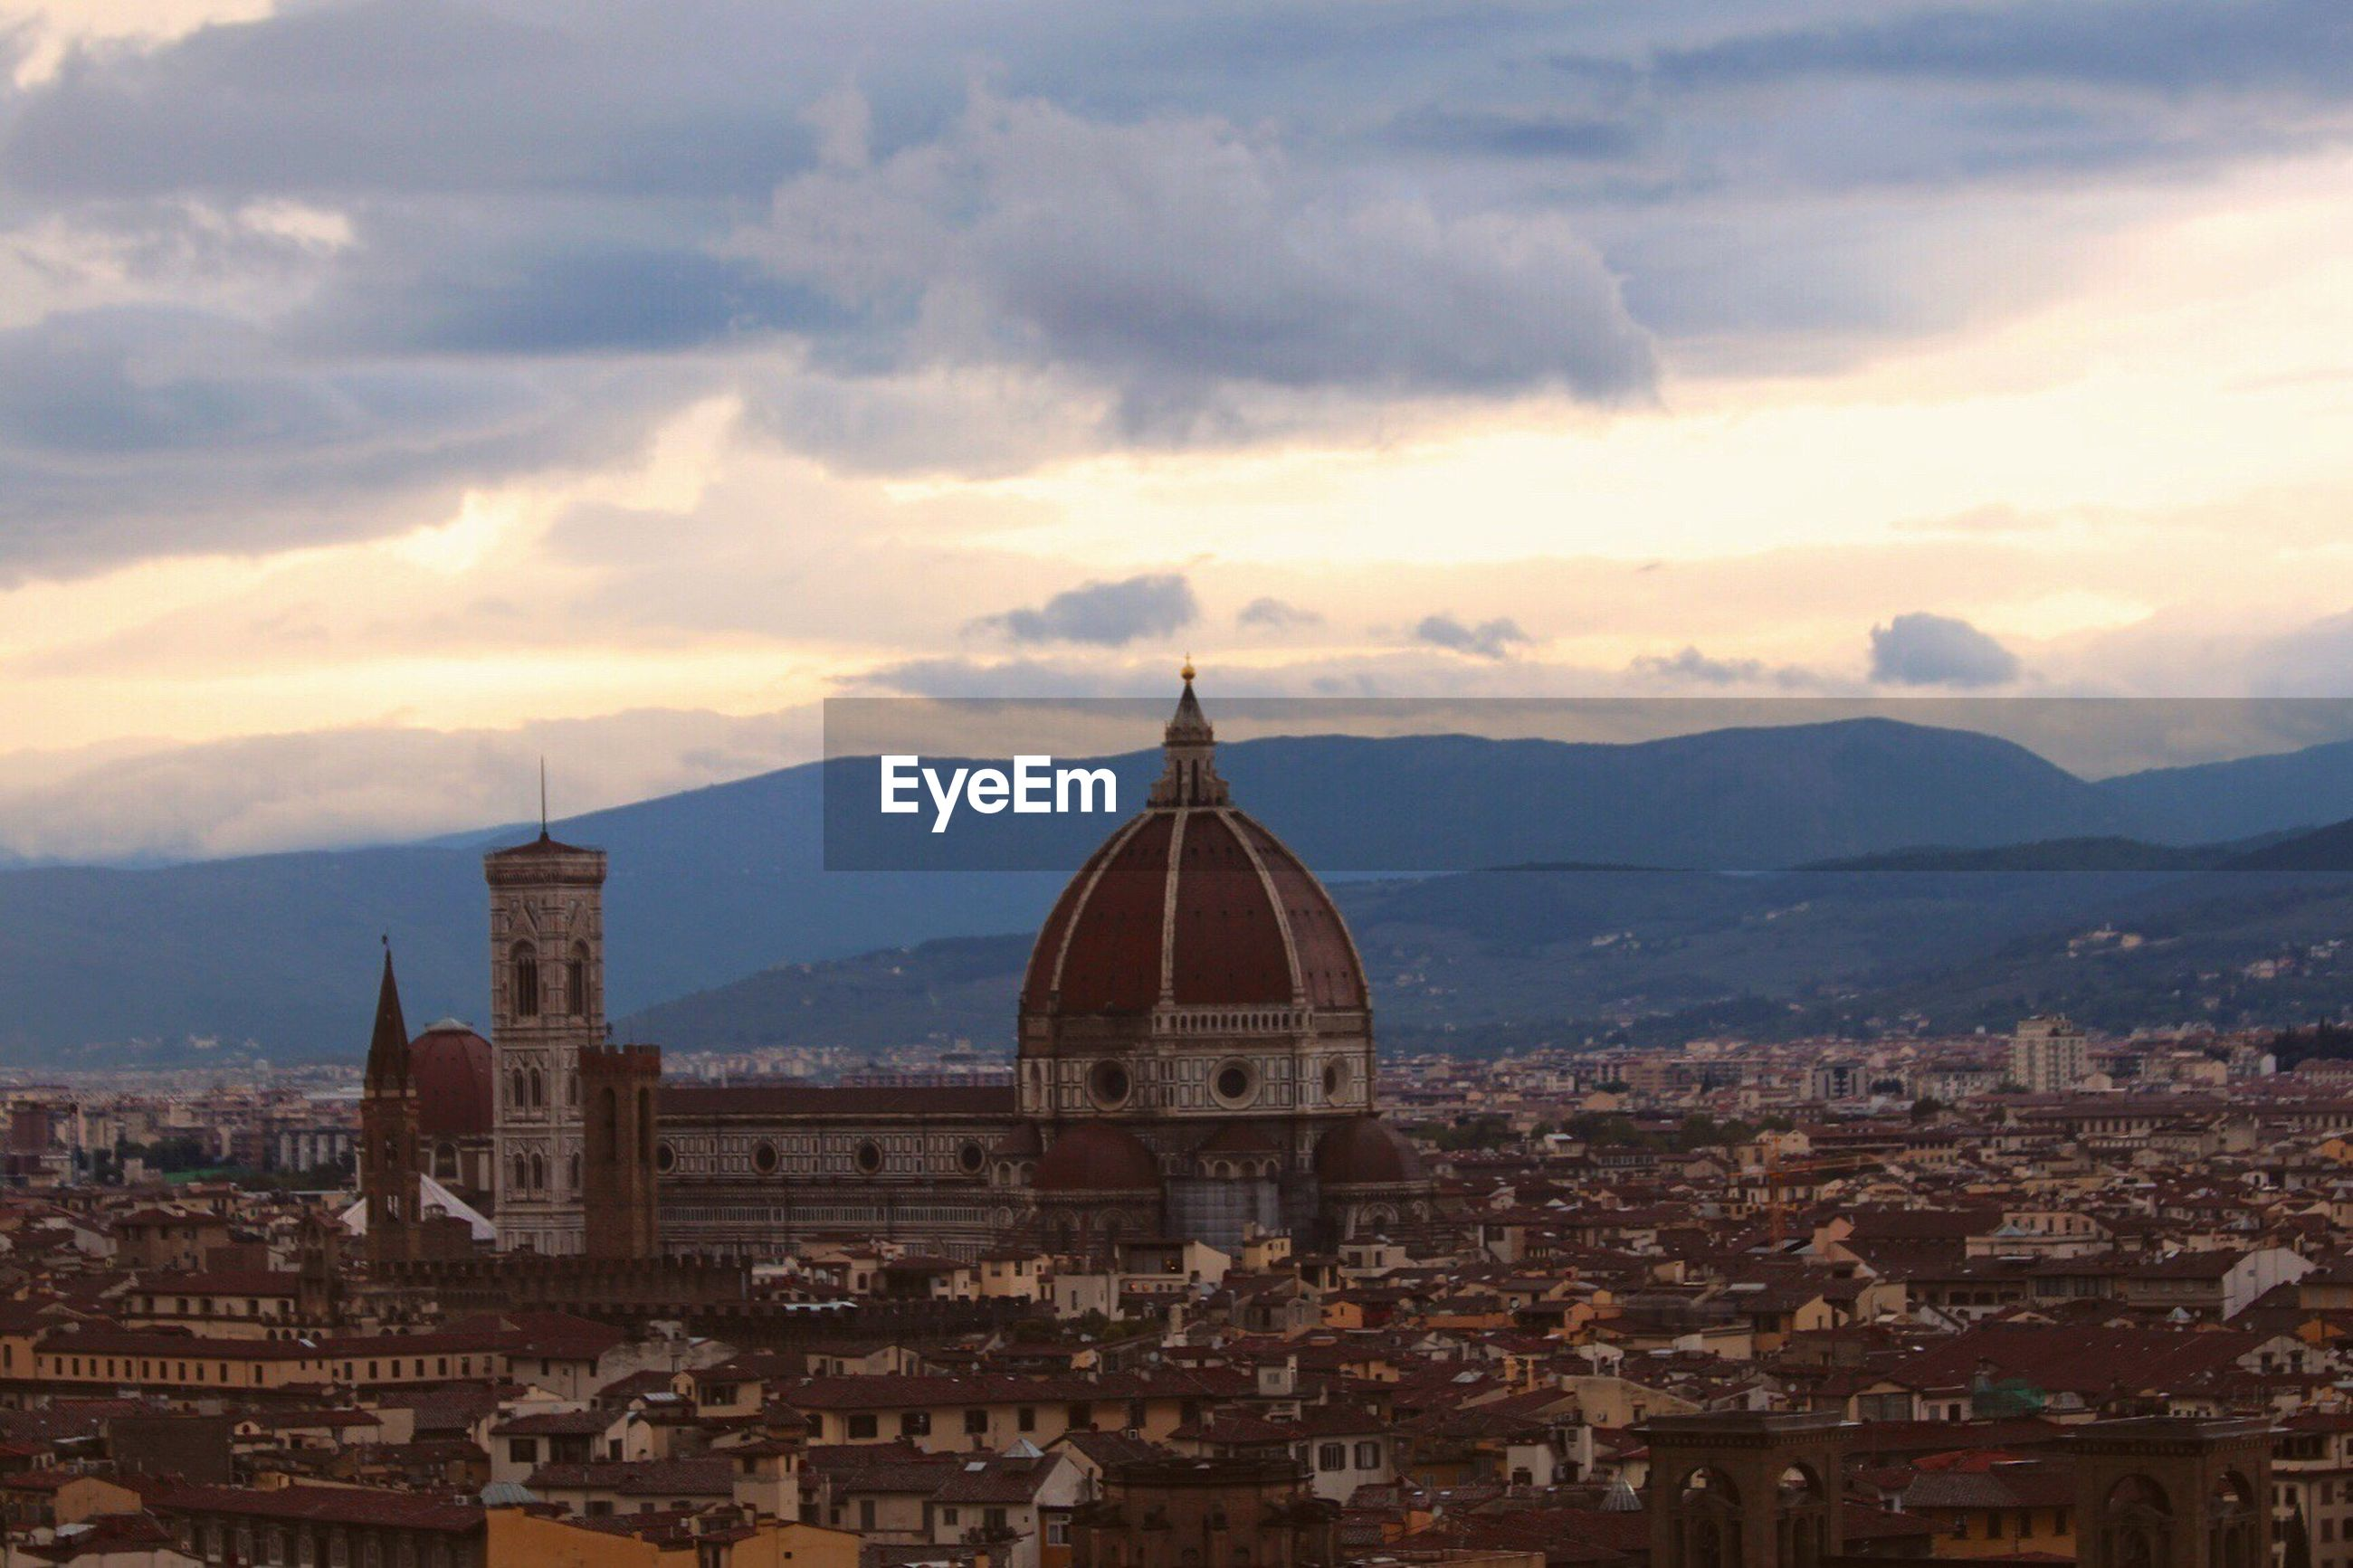 Duomo santa maria del fiore in city against cloudy sky during sunset